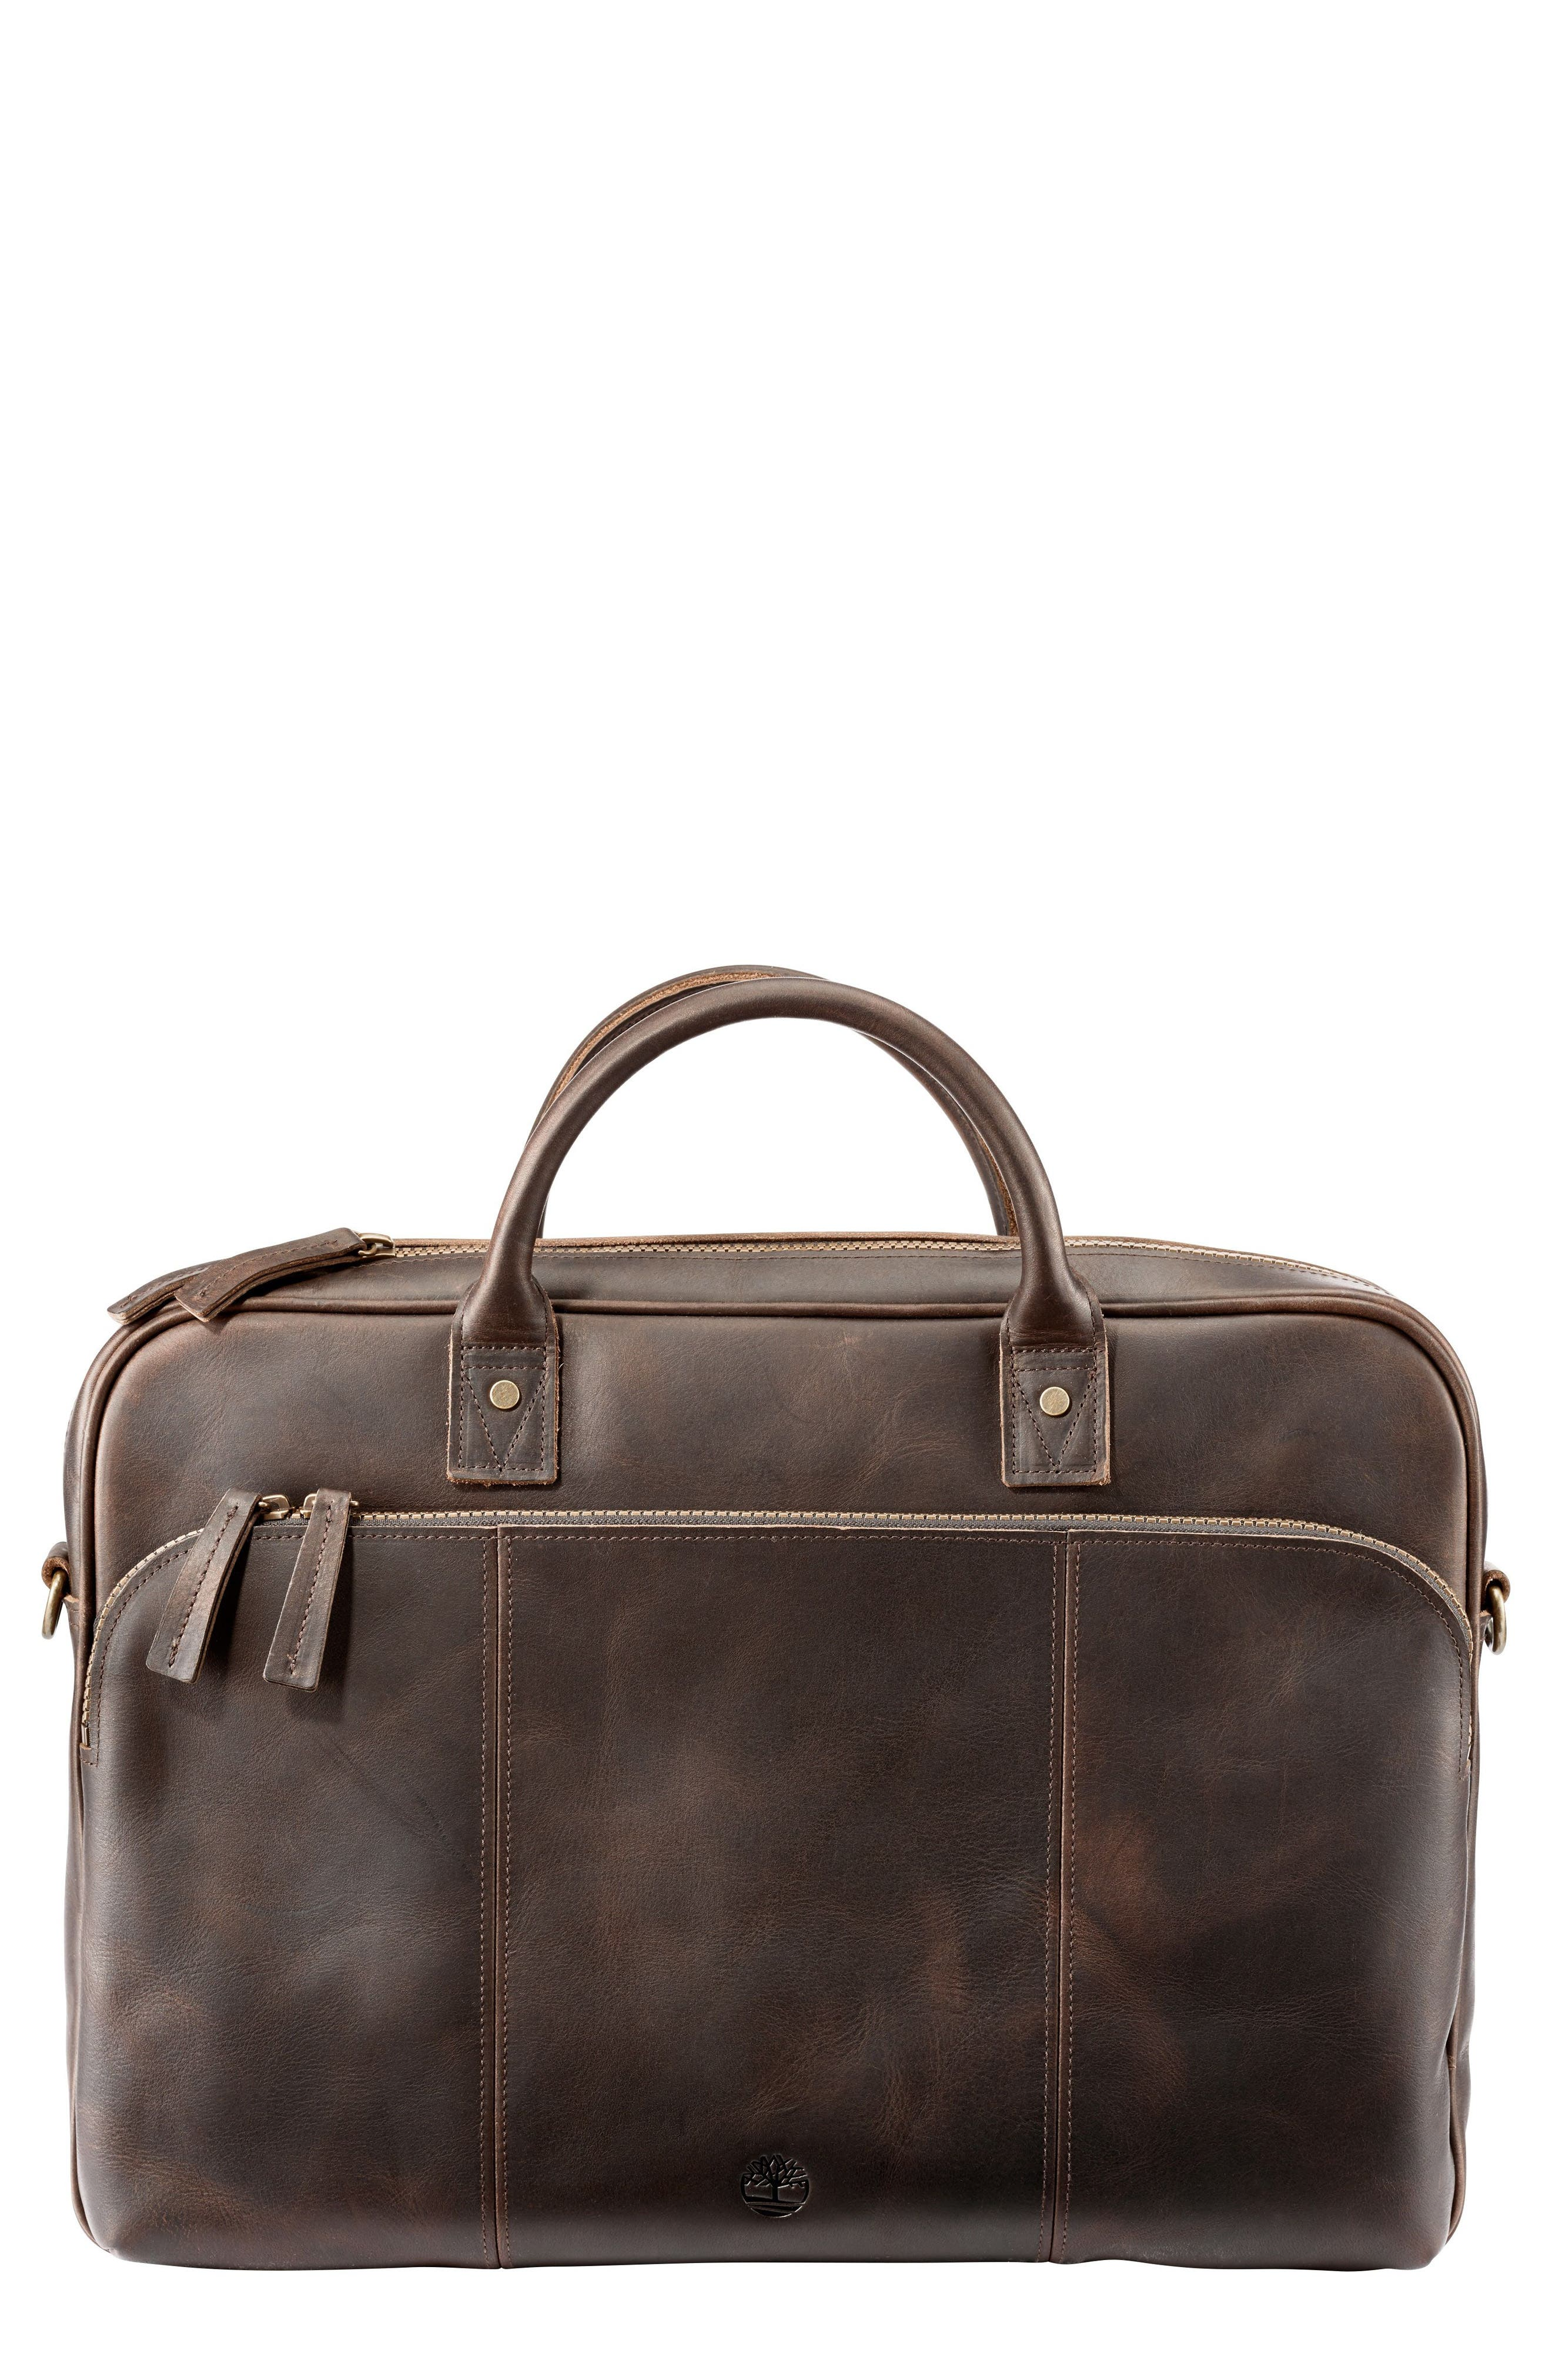 Timberland Tuckerman Leather Briefcase